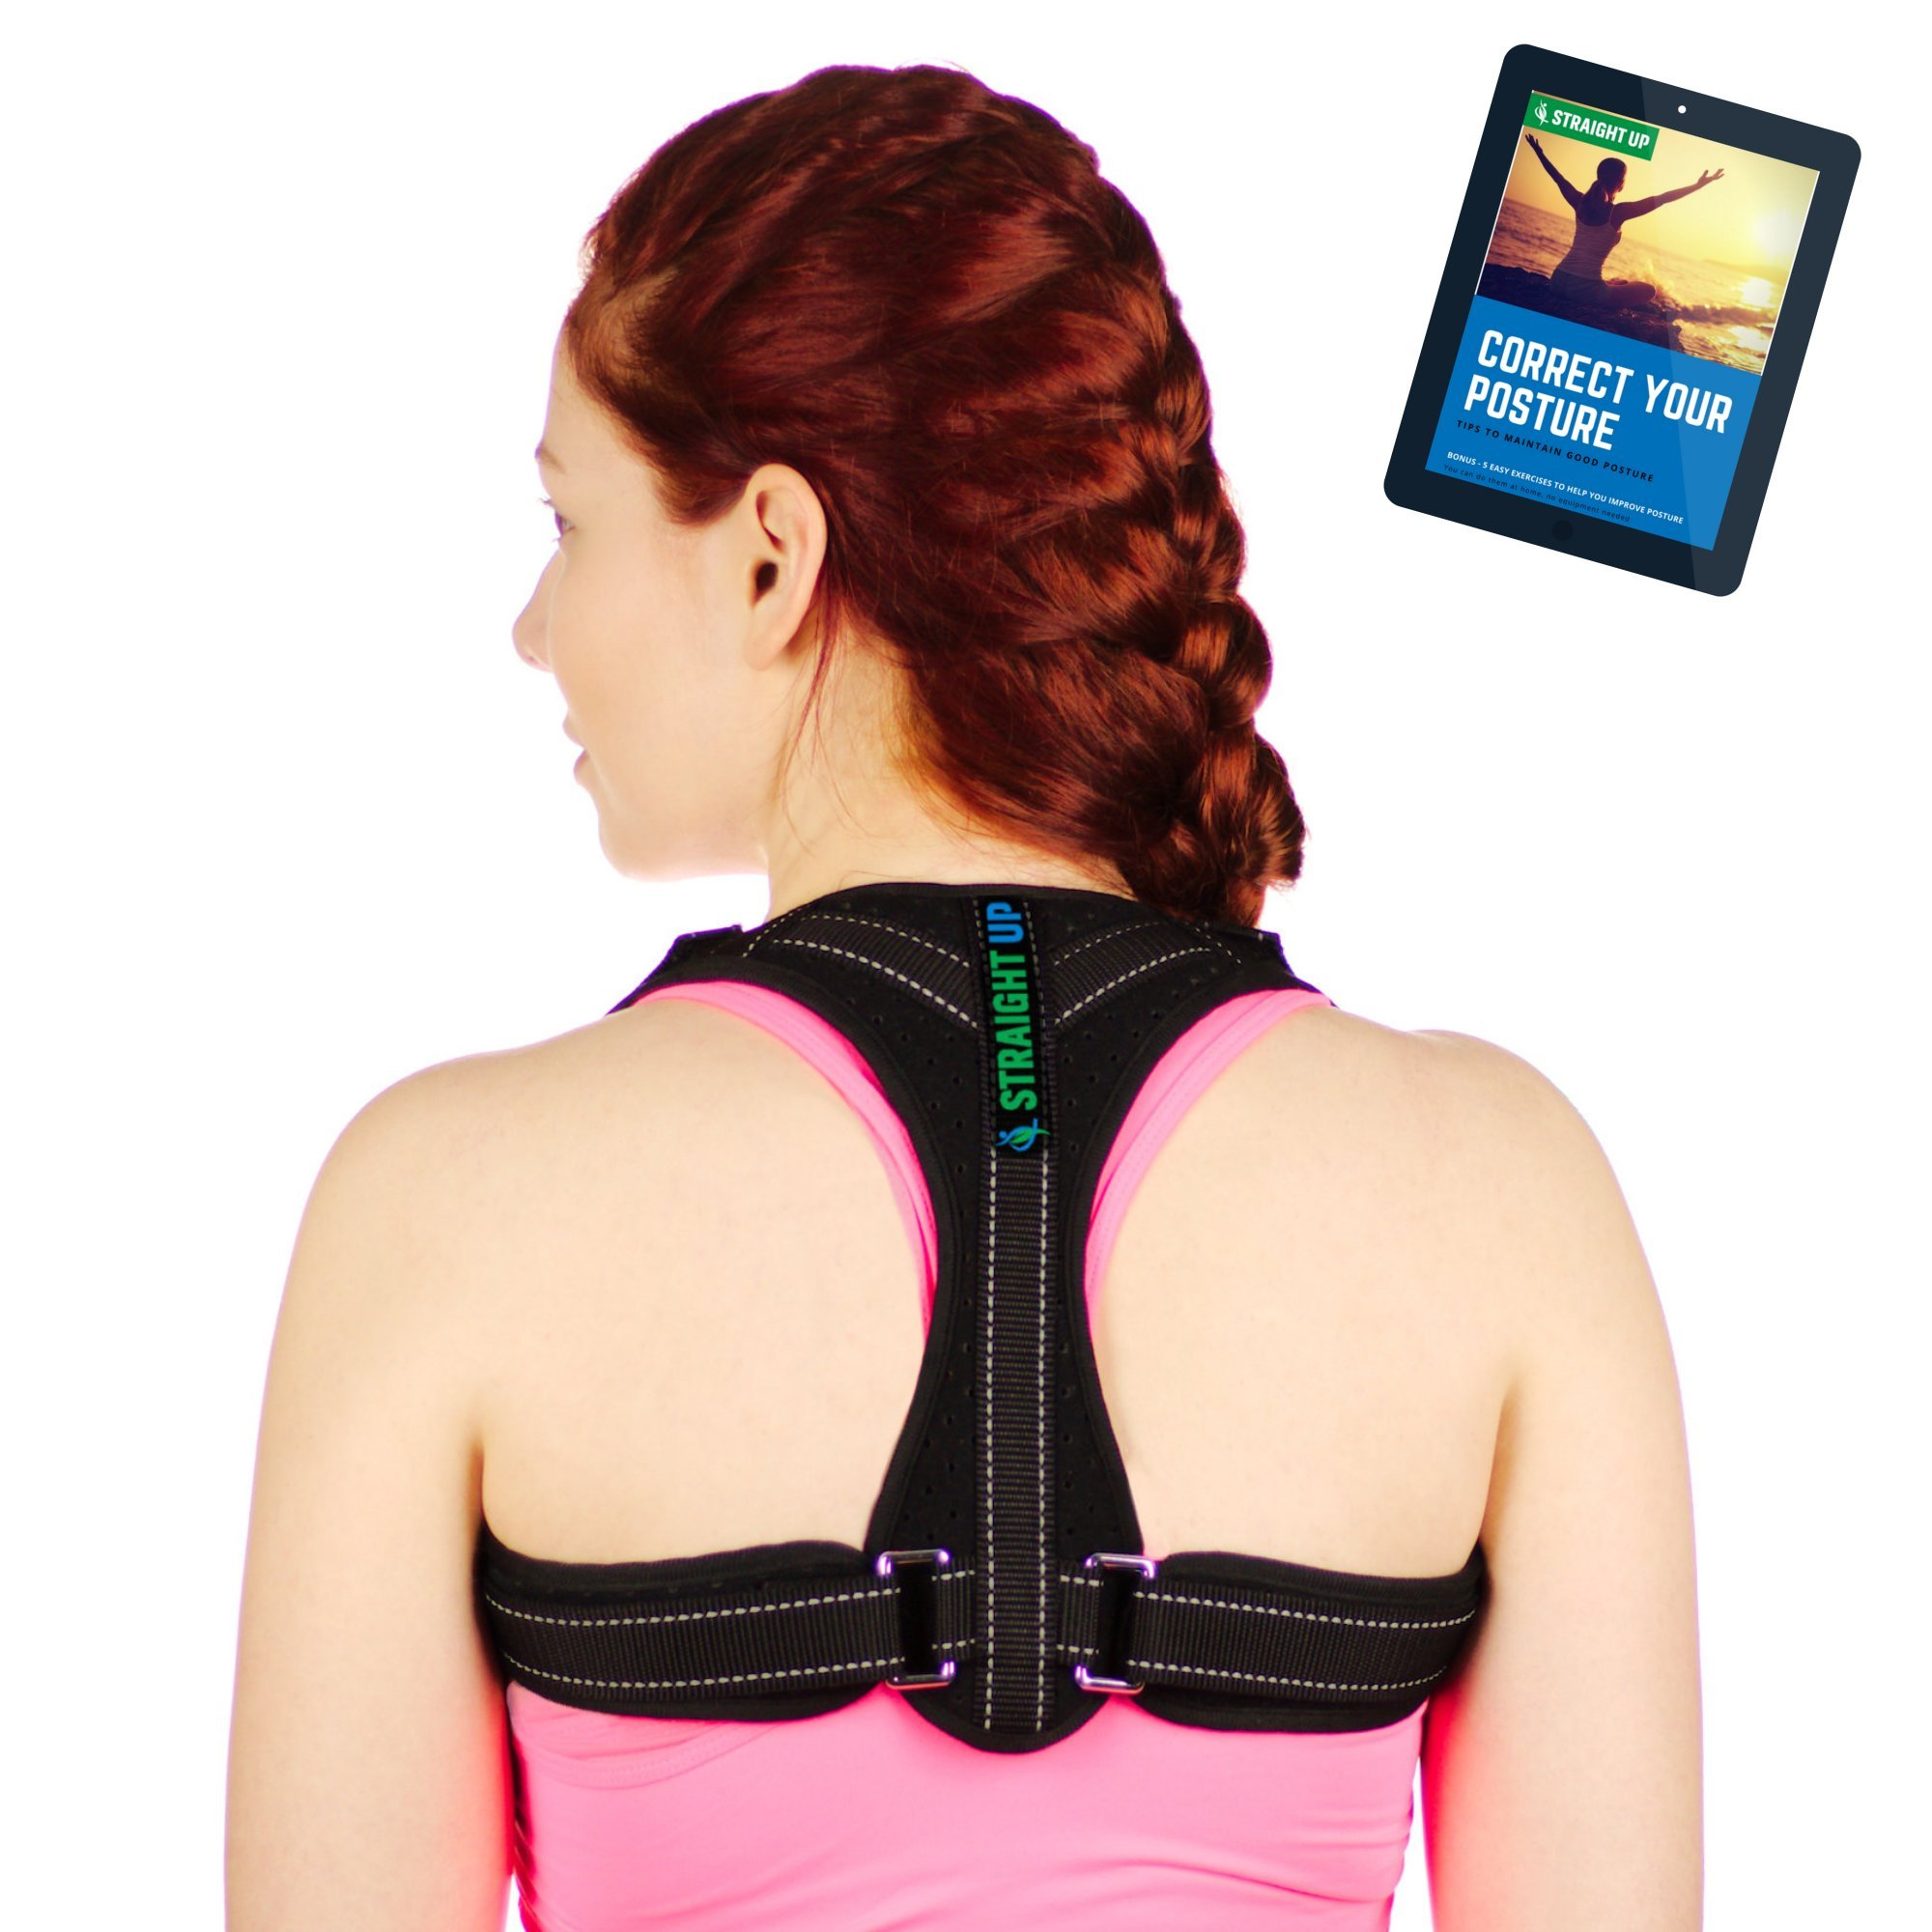 Back Posture Corrector and Clavicle Brace by STRAIGHT UP | Smart Comfort-Fit | Breathable Adjustable Orthopedic Support | Reduce Slouching, Back Pain | Men and Women XS-L Size